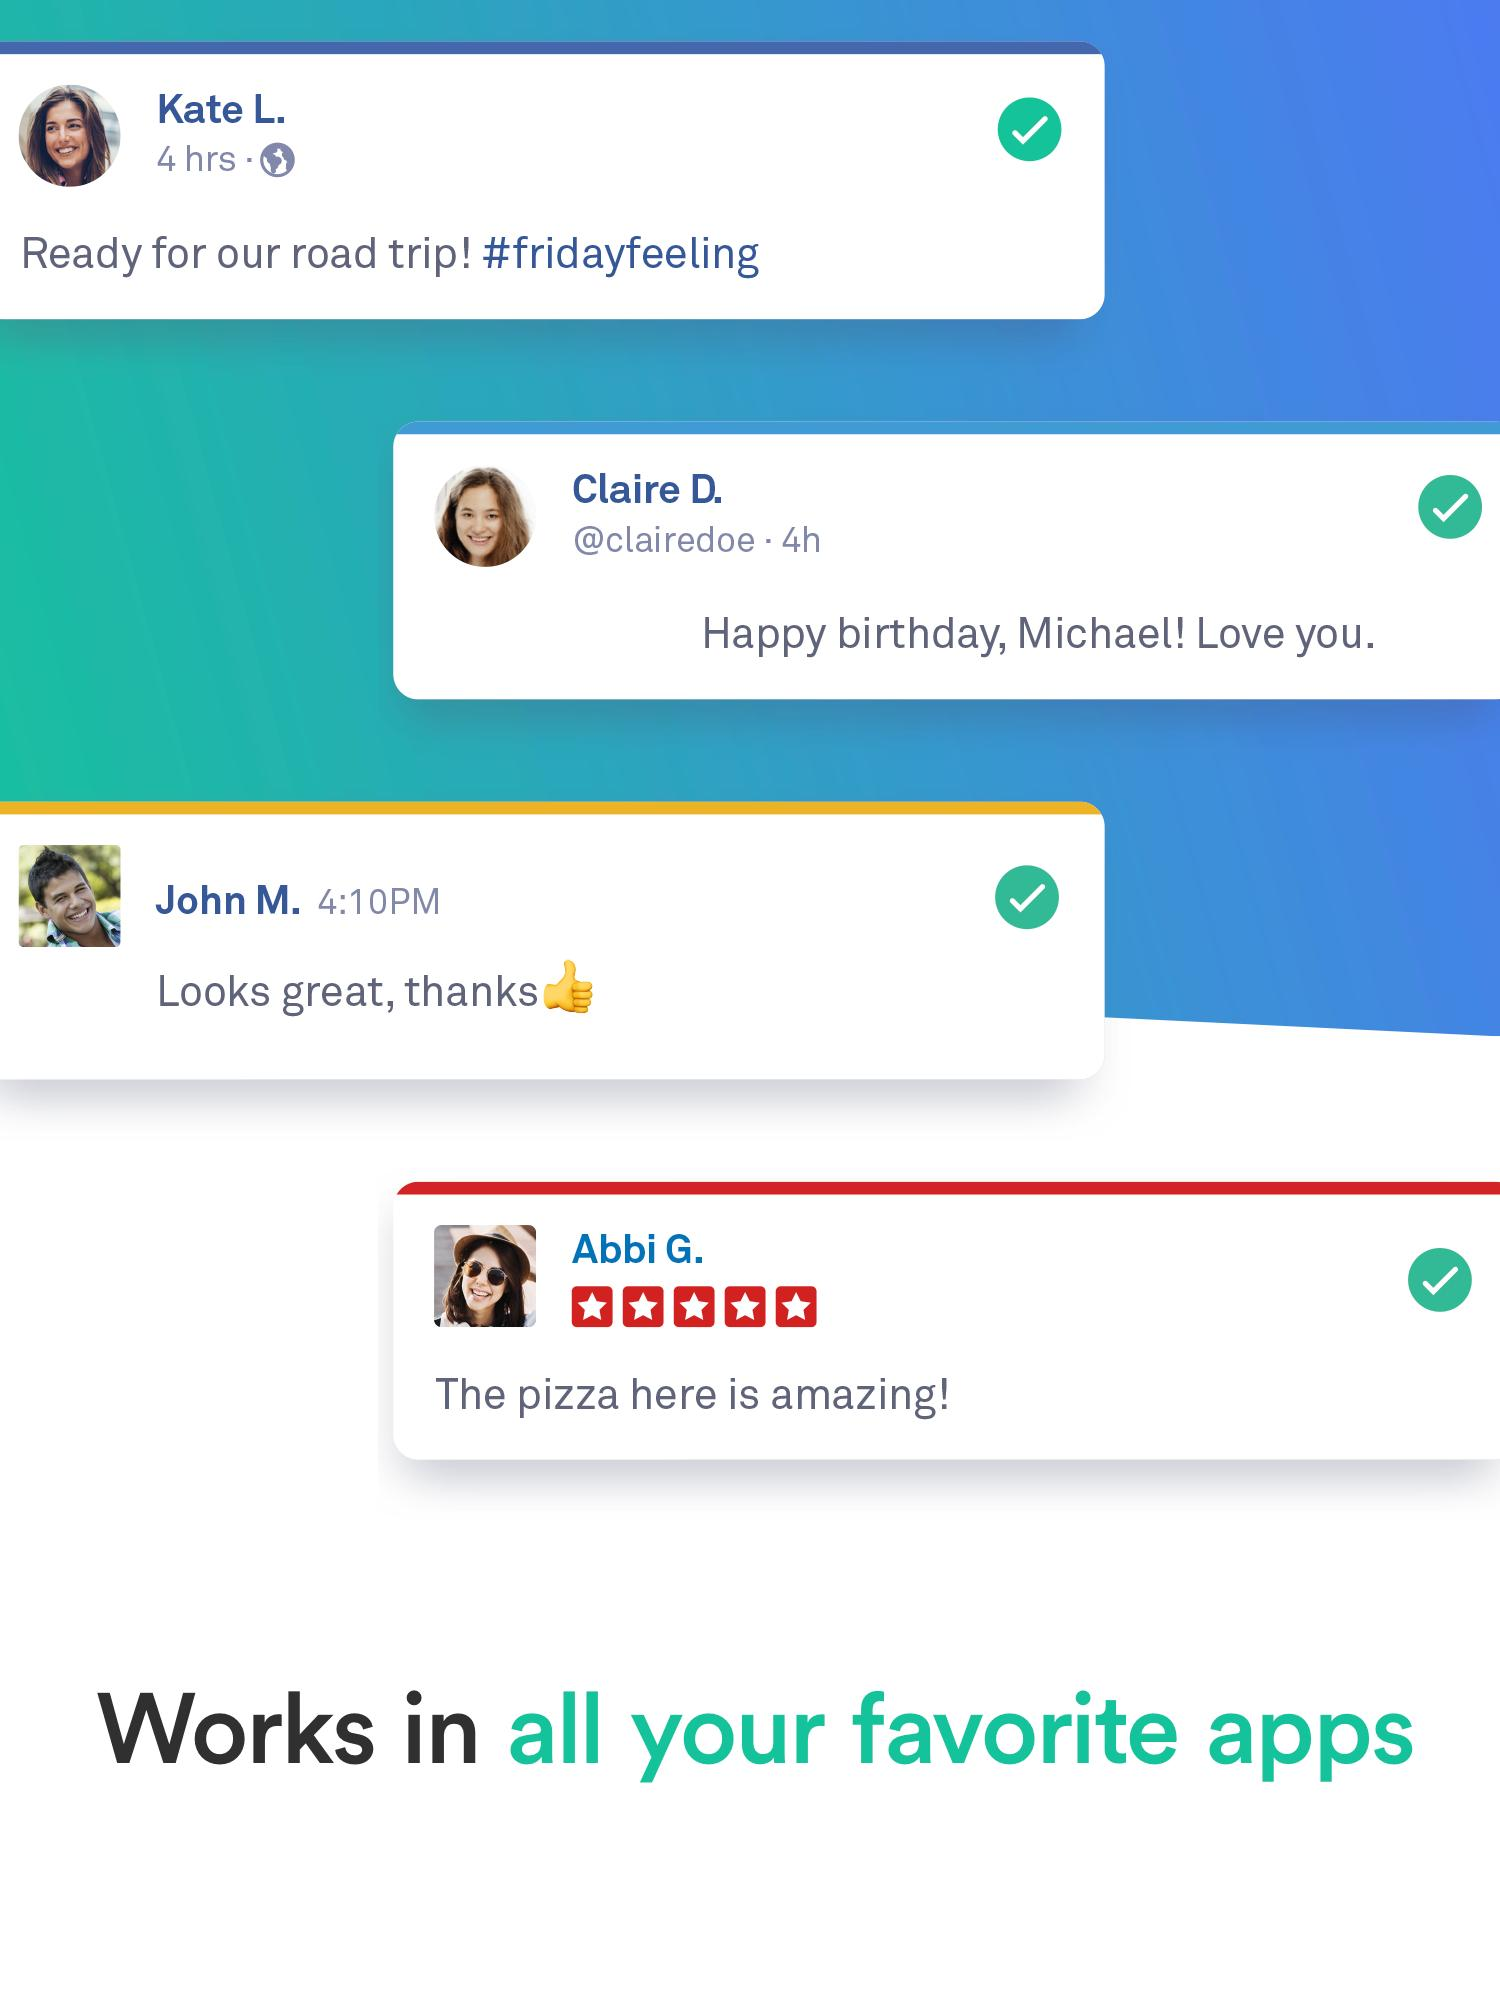 Grammarly Keyboard — Type with confidence 1.4.0.7 Screenshot 12